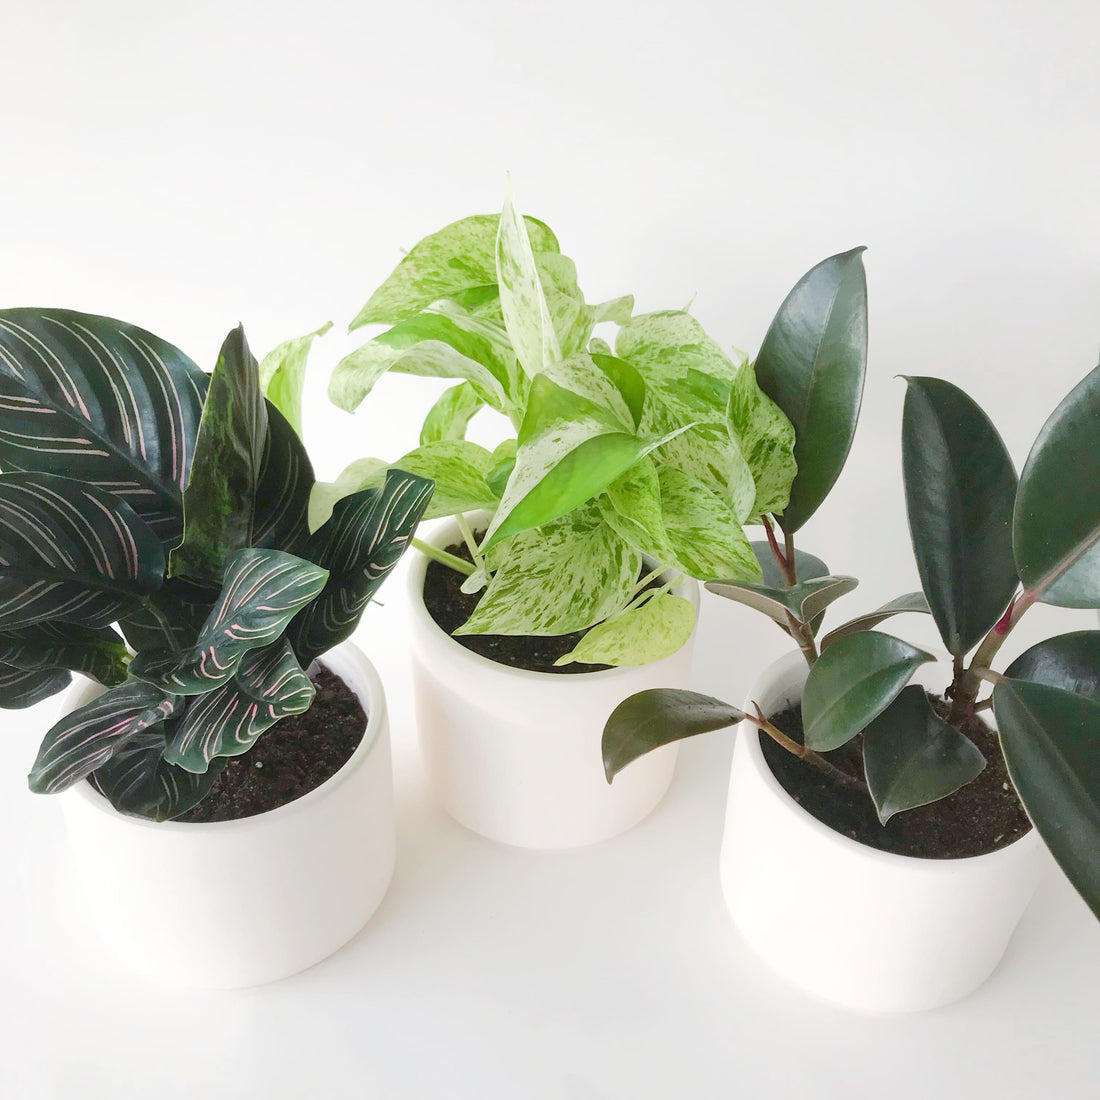 Calethia Plant, Marble Queen Pothos, and Rubber Plant in Handmade Ceramic Pots